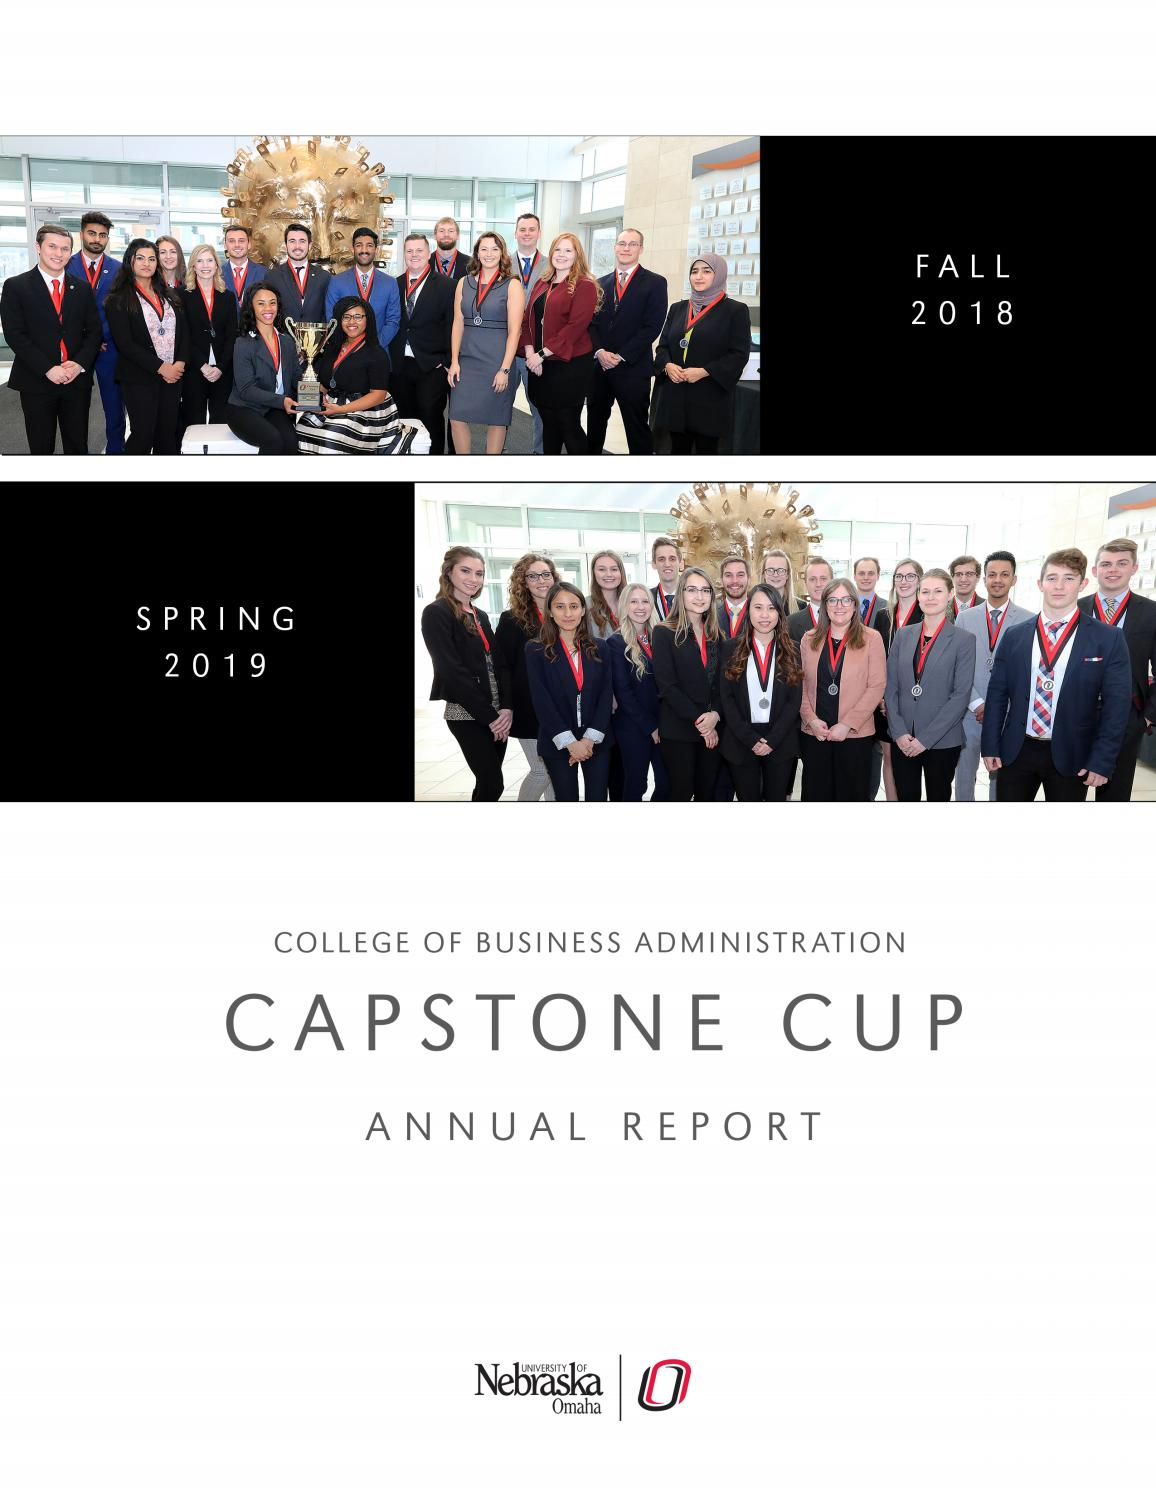 Capstone Cup 2018-2019 Annual Report by UNO College of